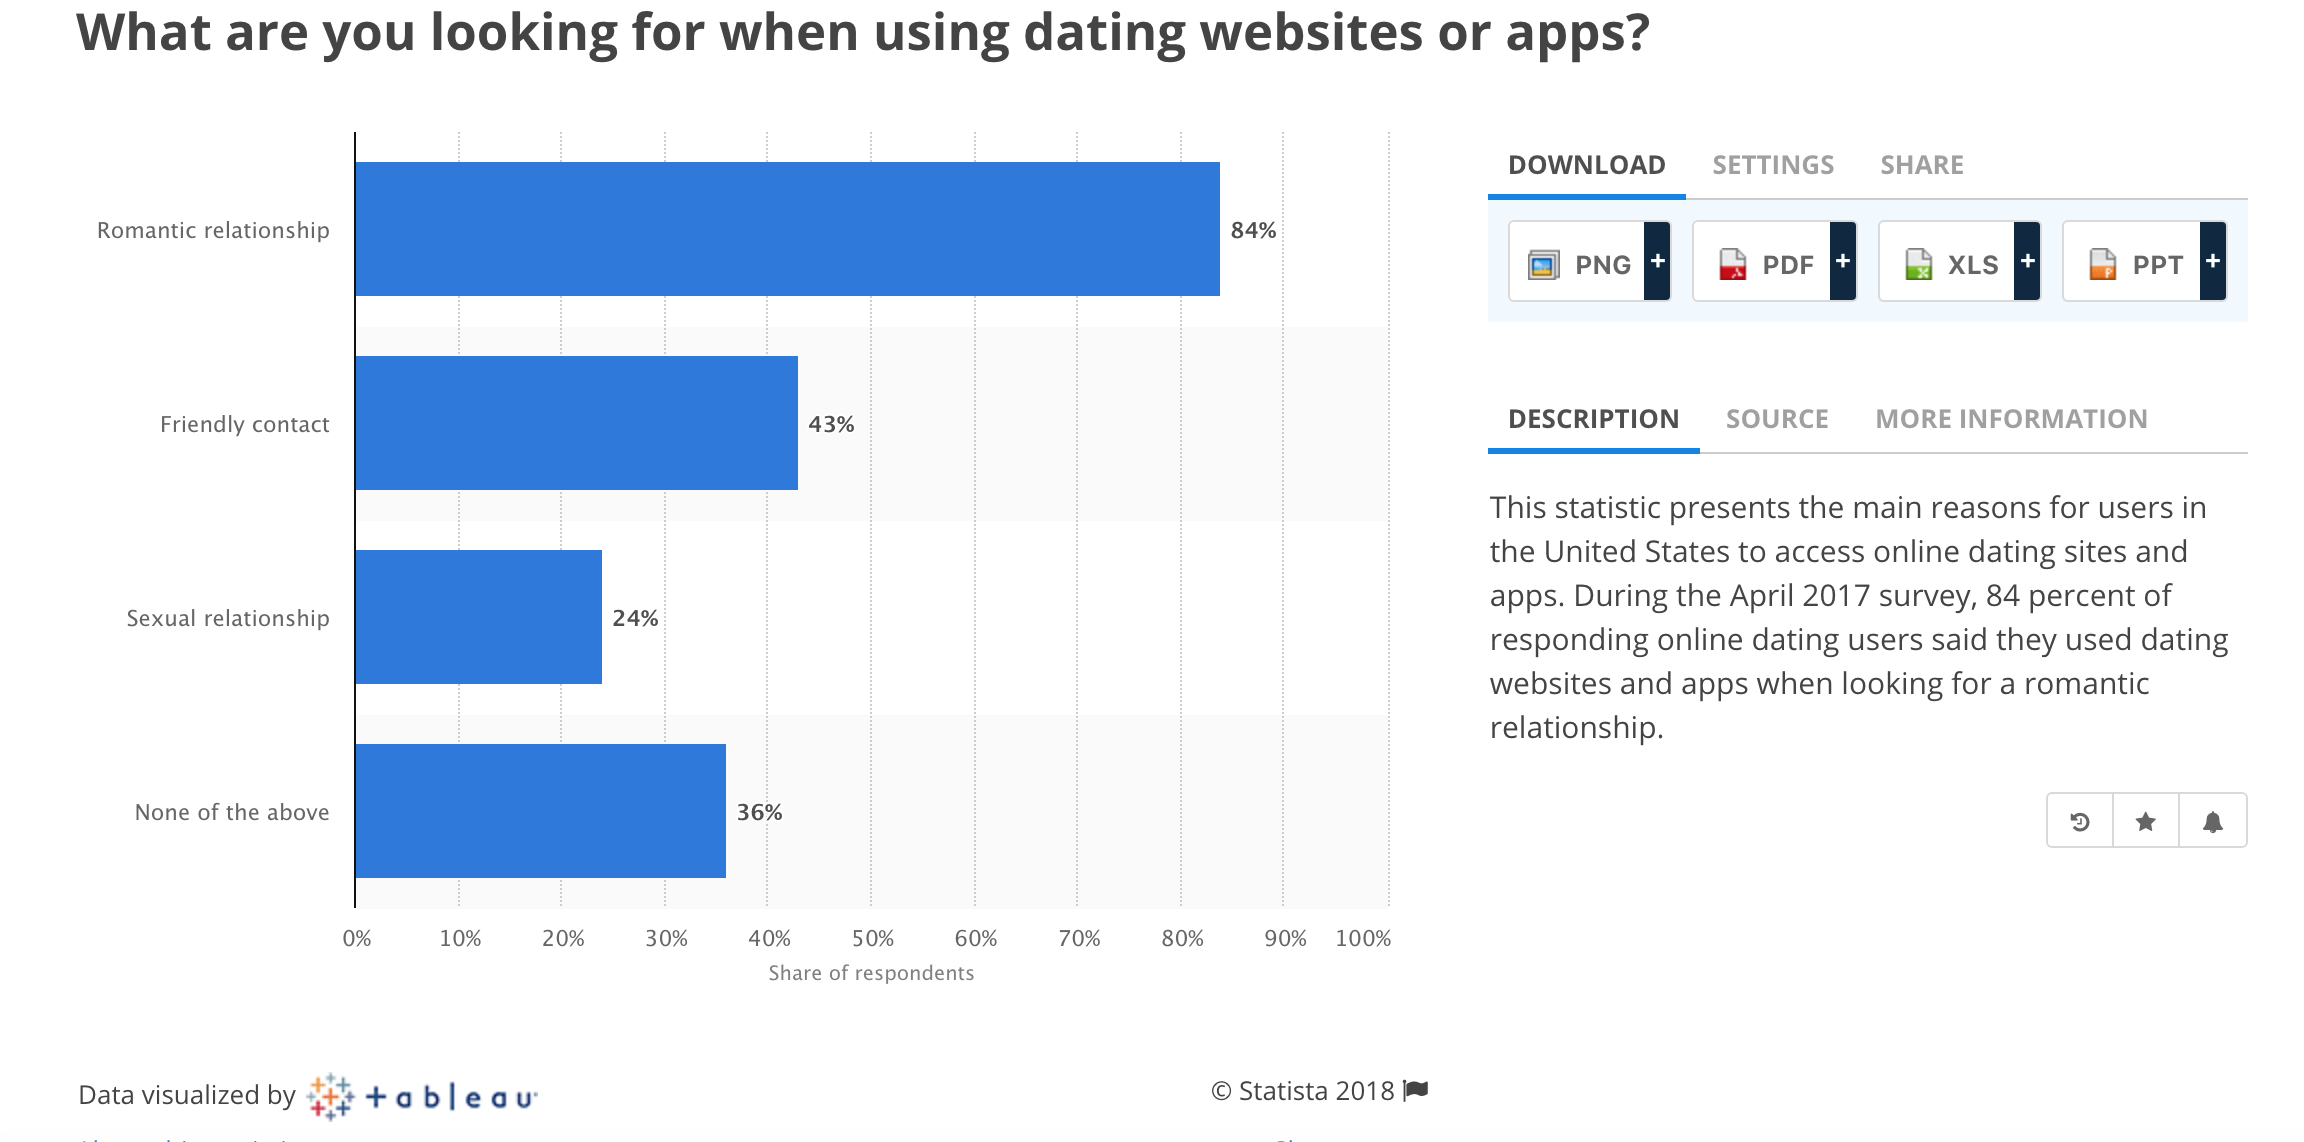 What are you looking for when using dating websites or apps